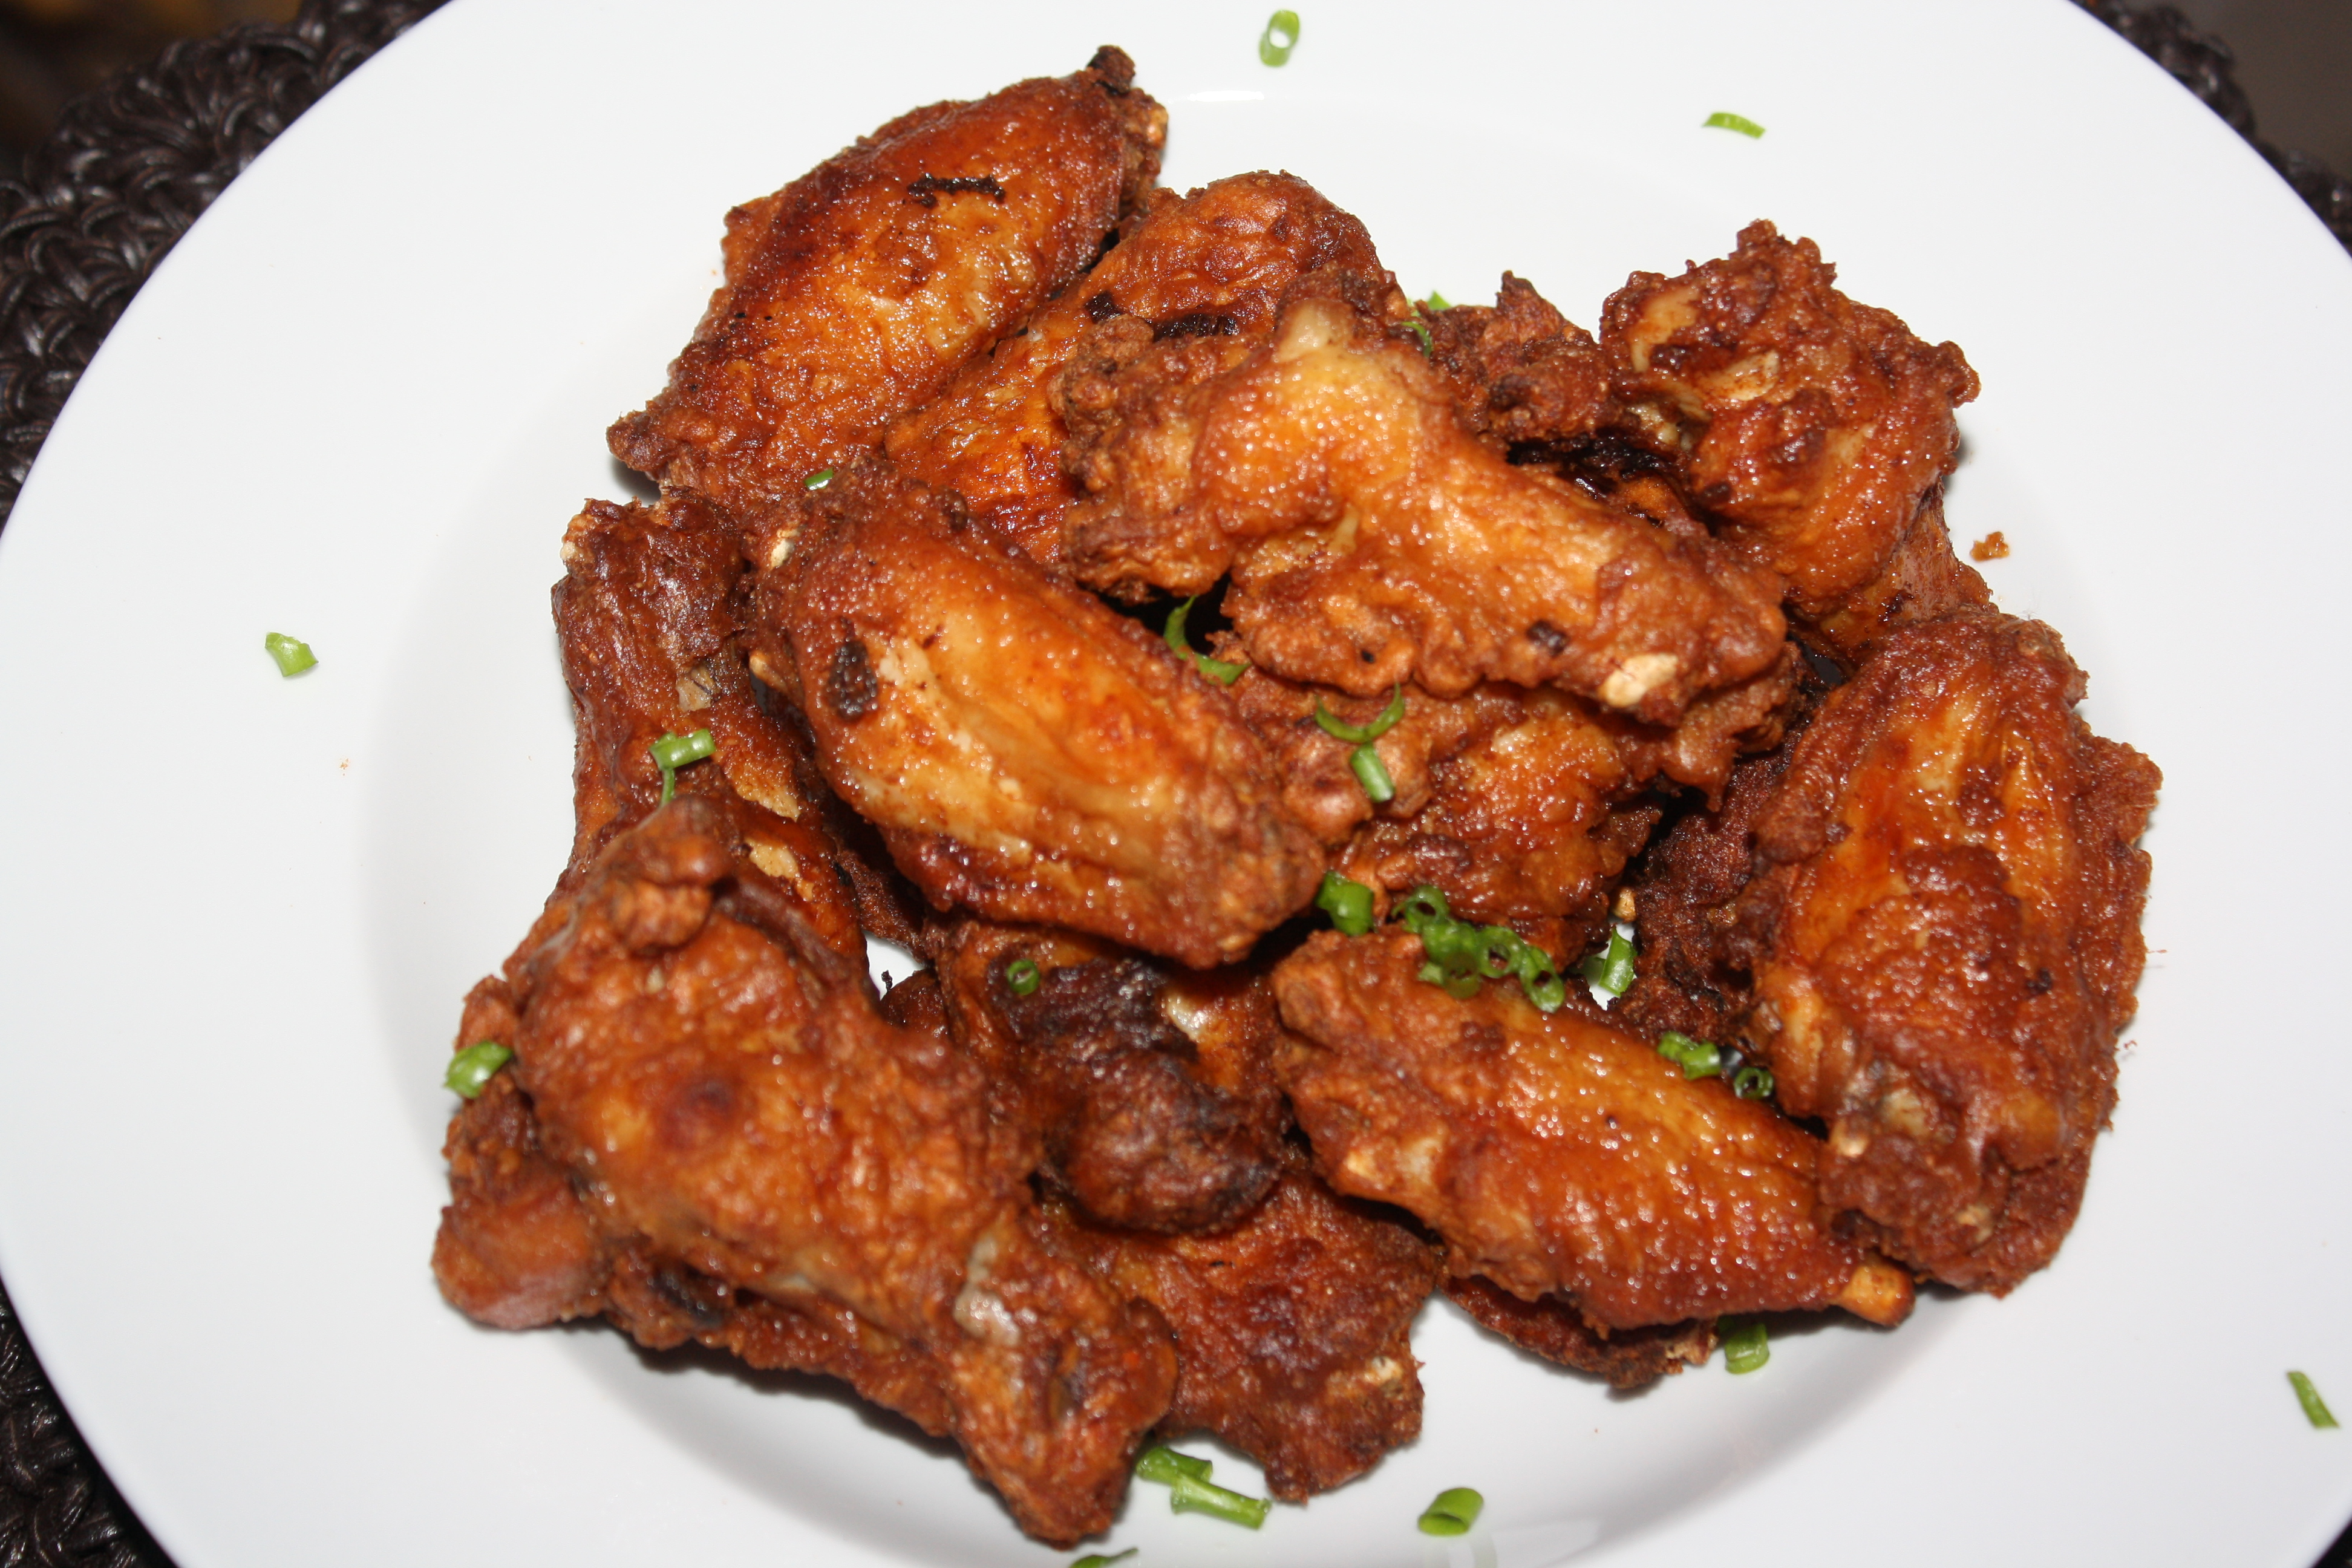 Fried Chicken Wings Images & Pictures - Becuo